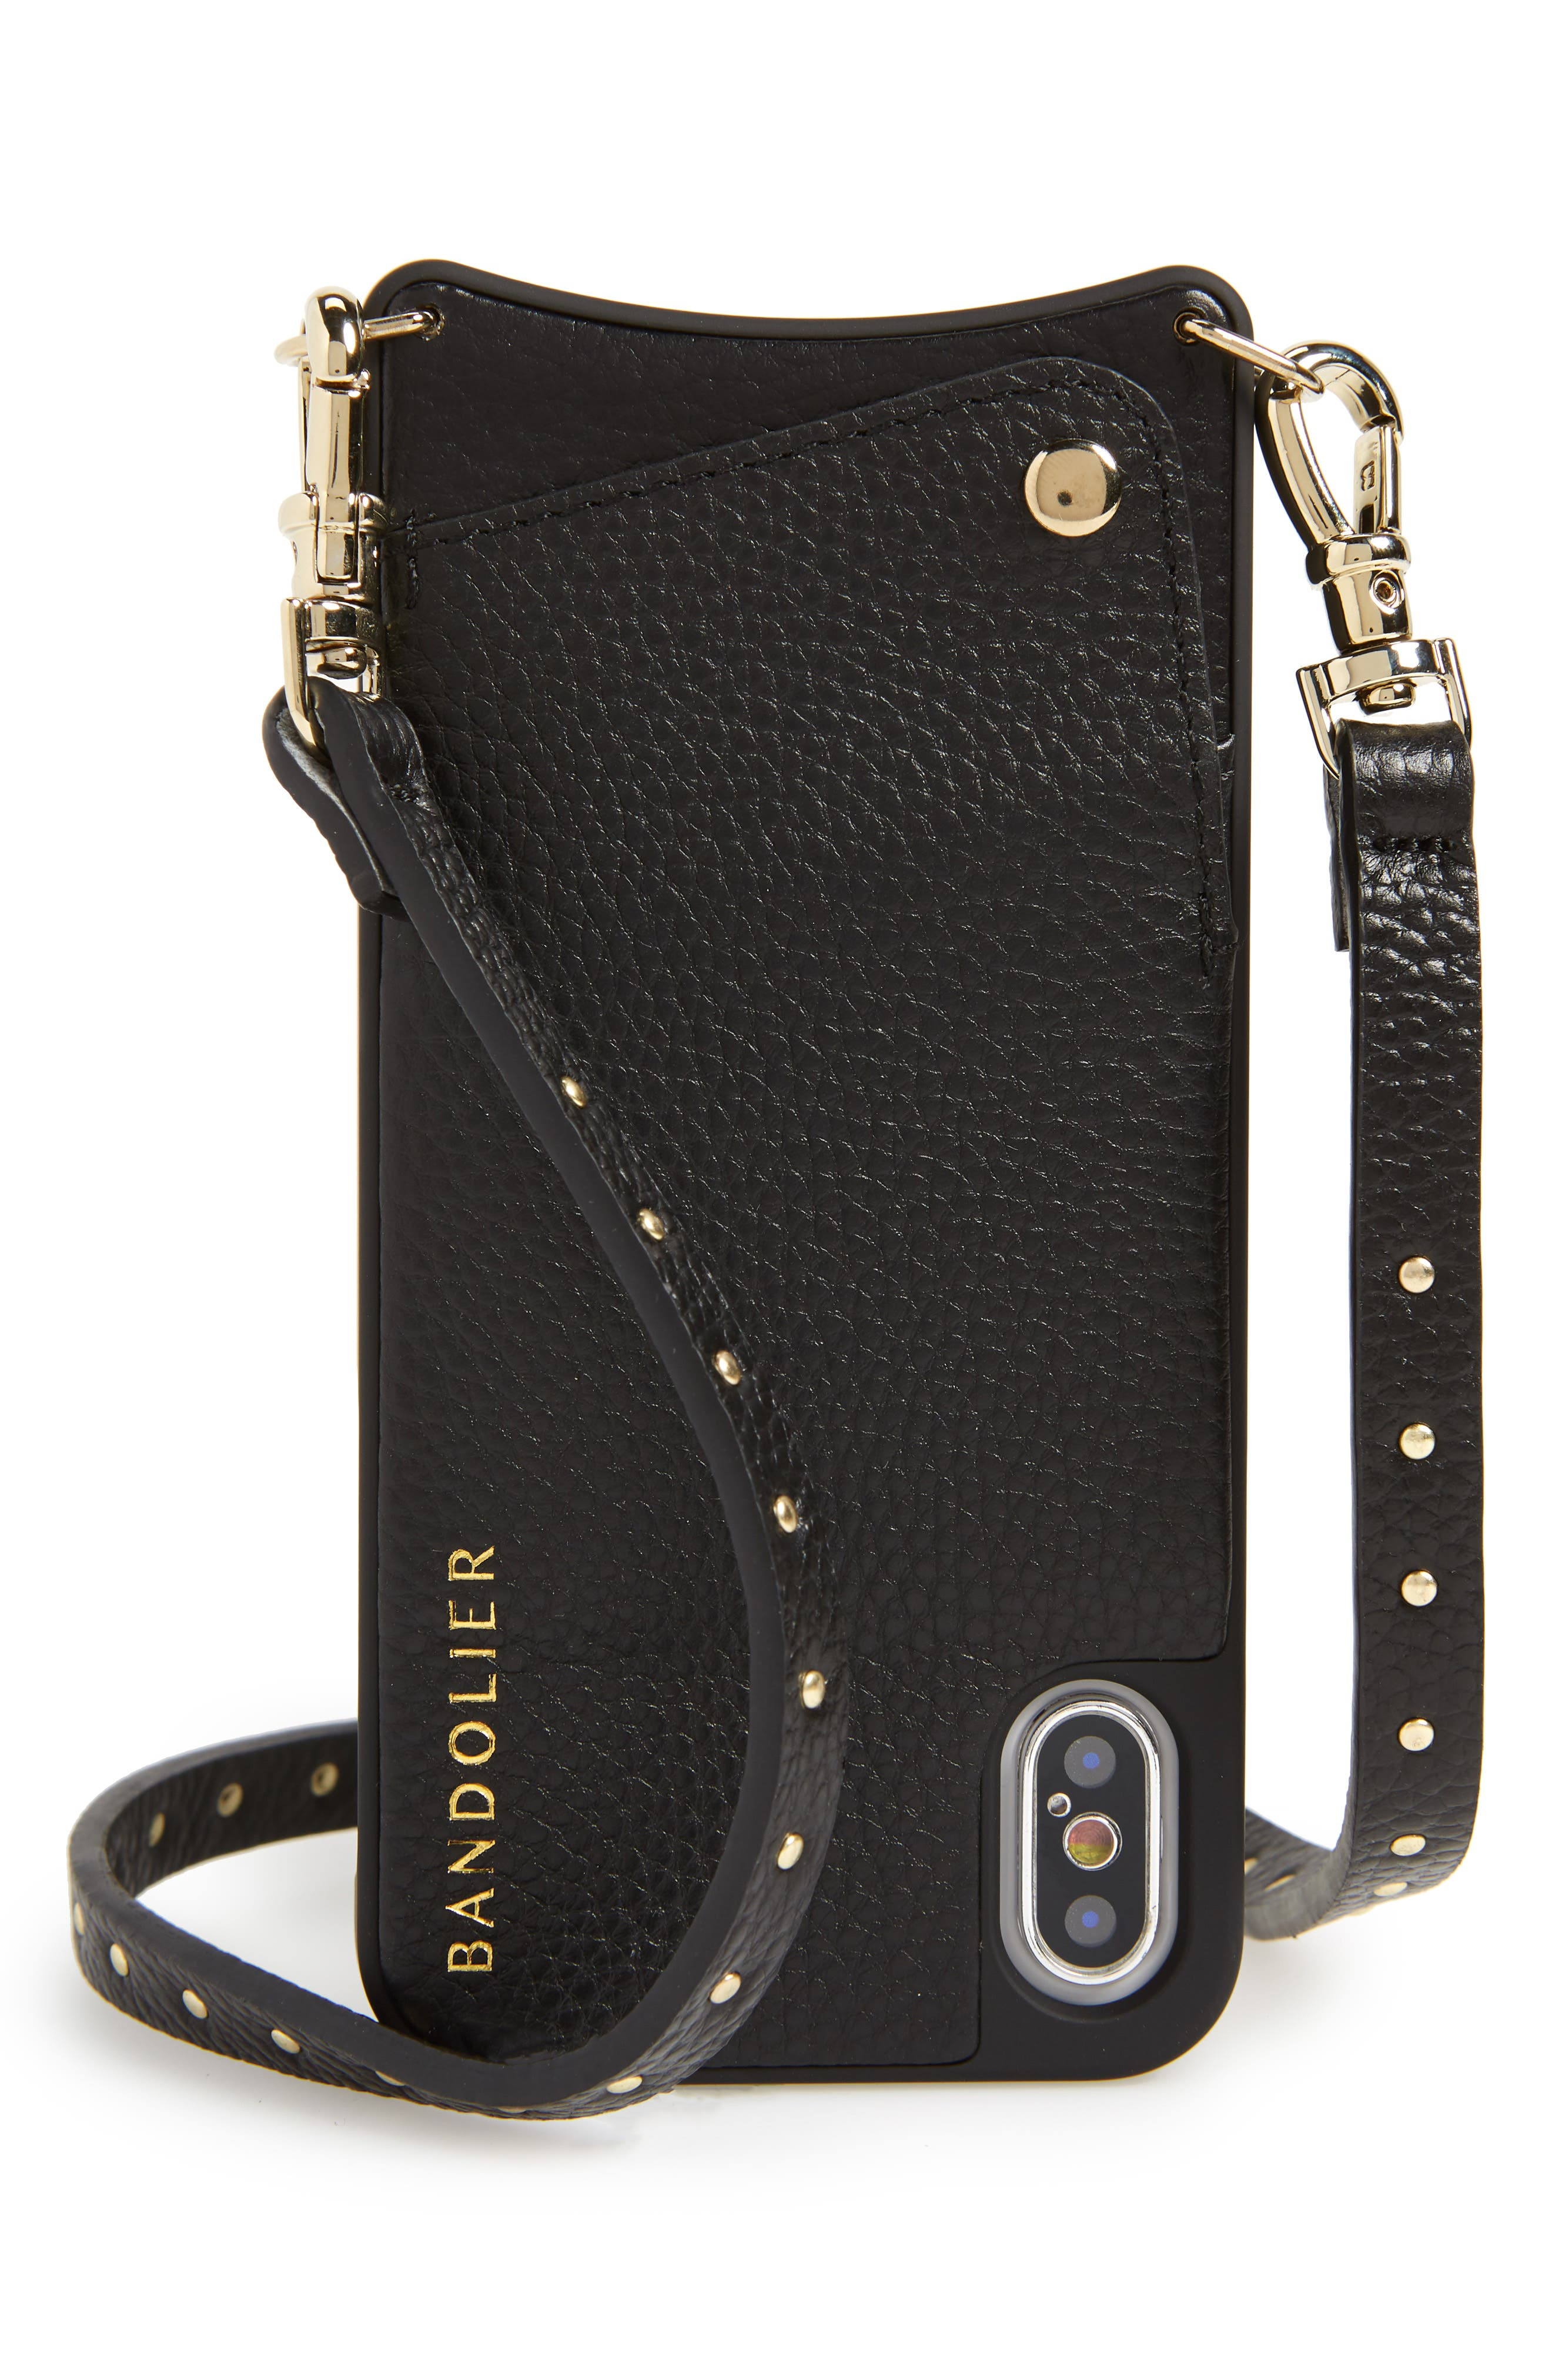 Nicole Pebbled Leather 6/7/8 & 6/7/8 Plus Crossbody Case, Main, color, BLACK/ GOLD